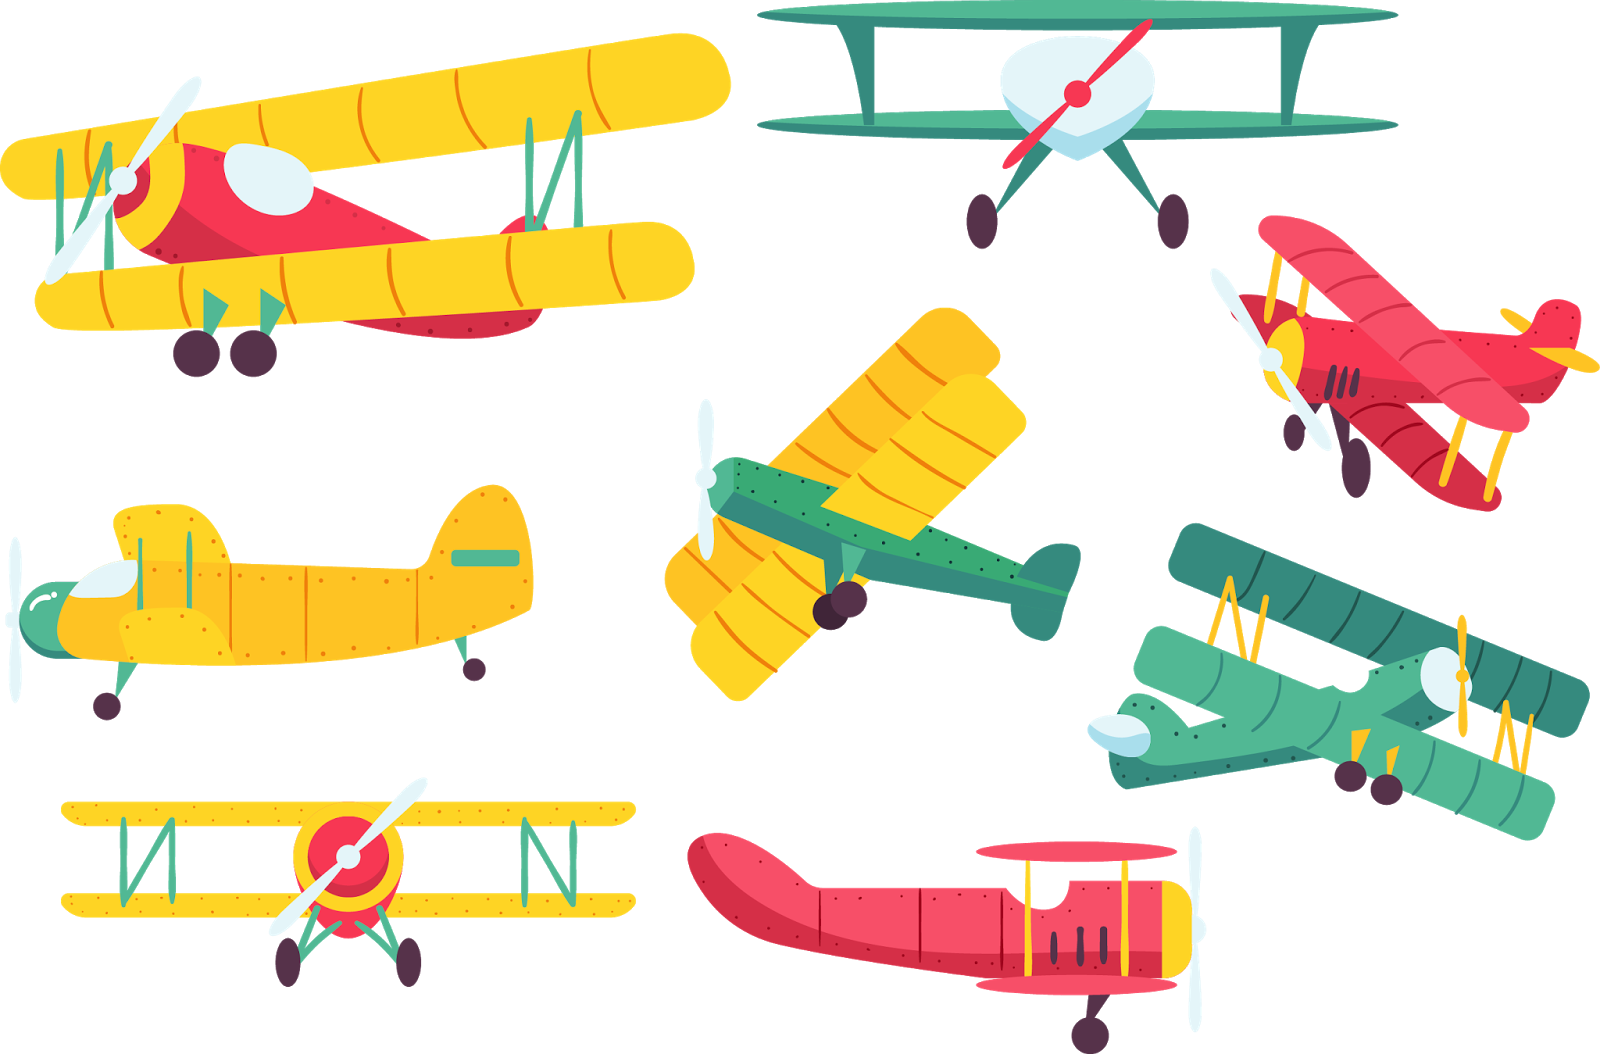 Biplane vector. Pin by anne luckey